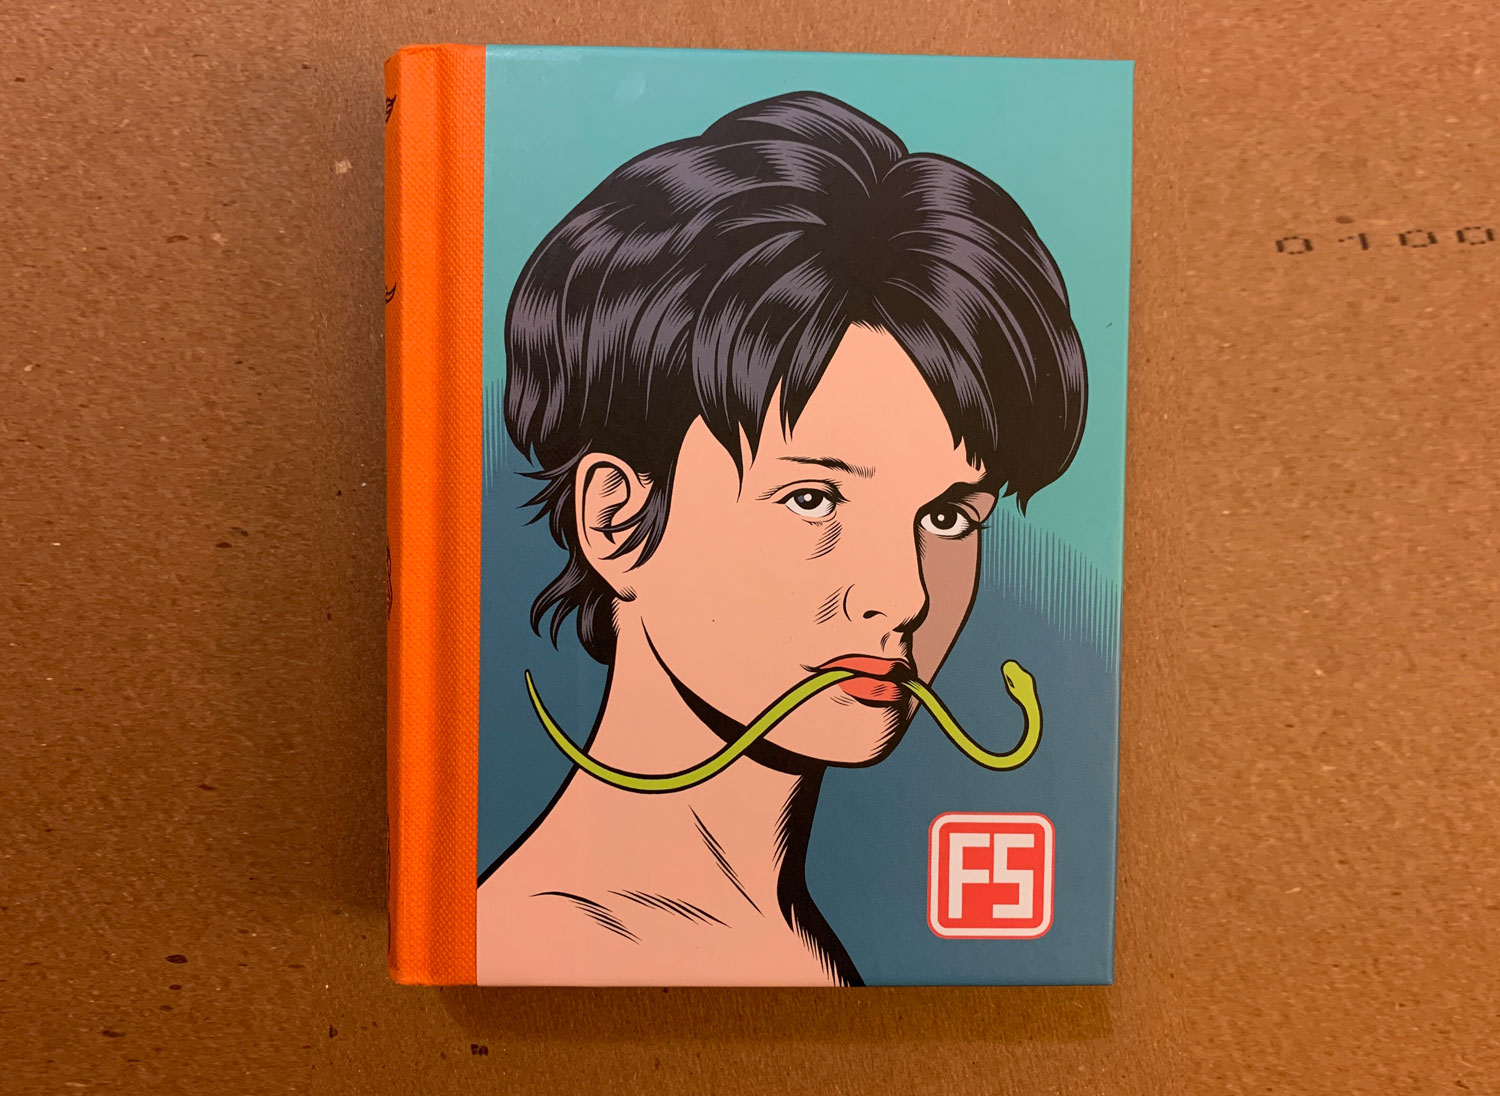 Cartoonist Charles Burns' secret zine is available as a book